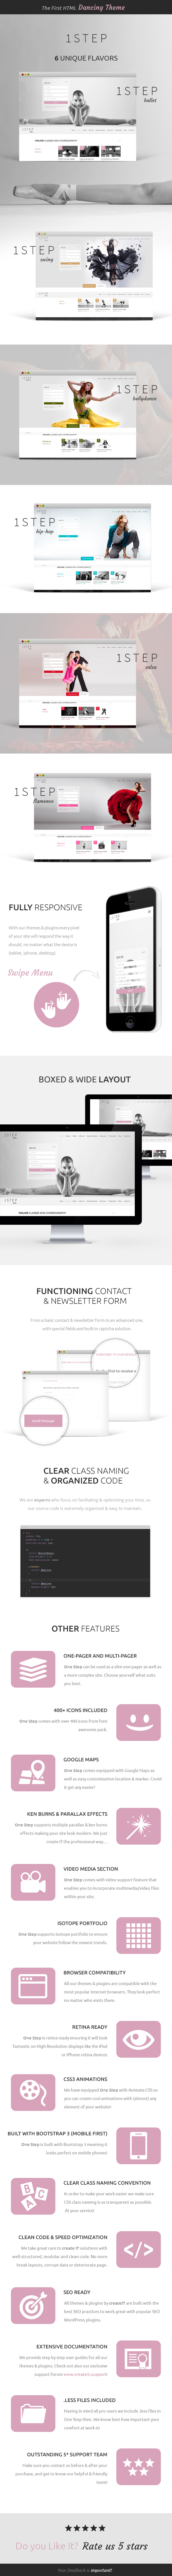 One Step - Creative Ballet HTML Template - 7